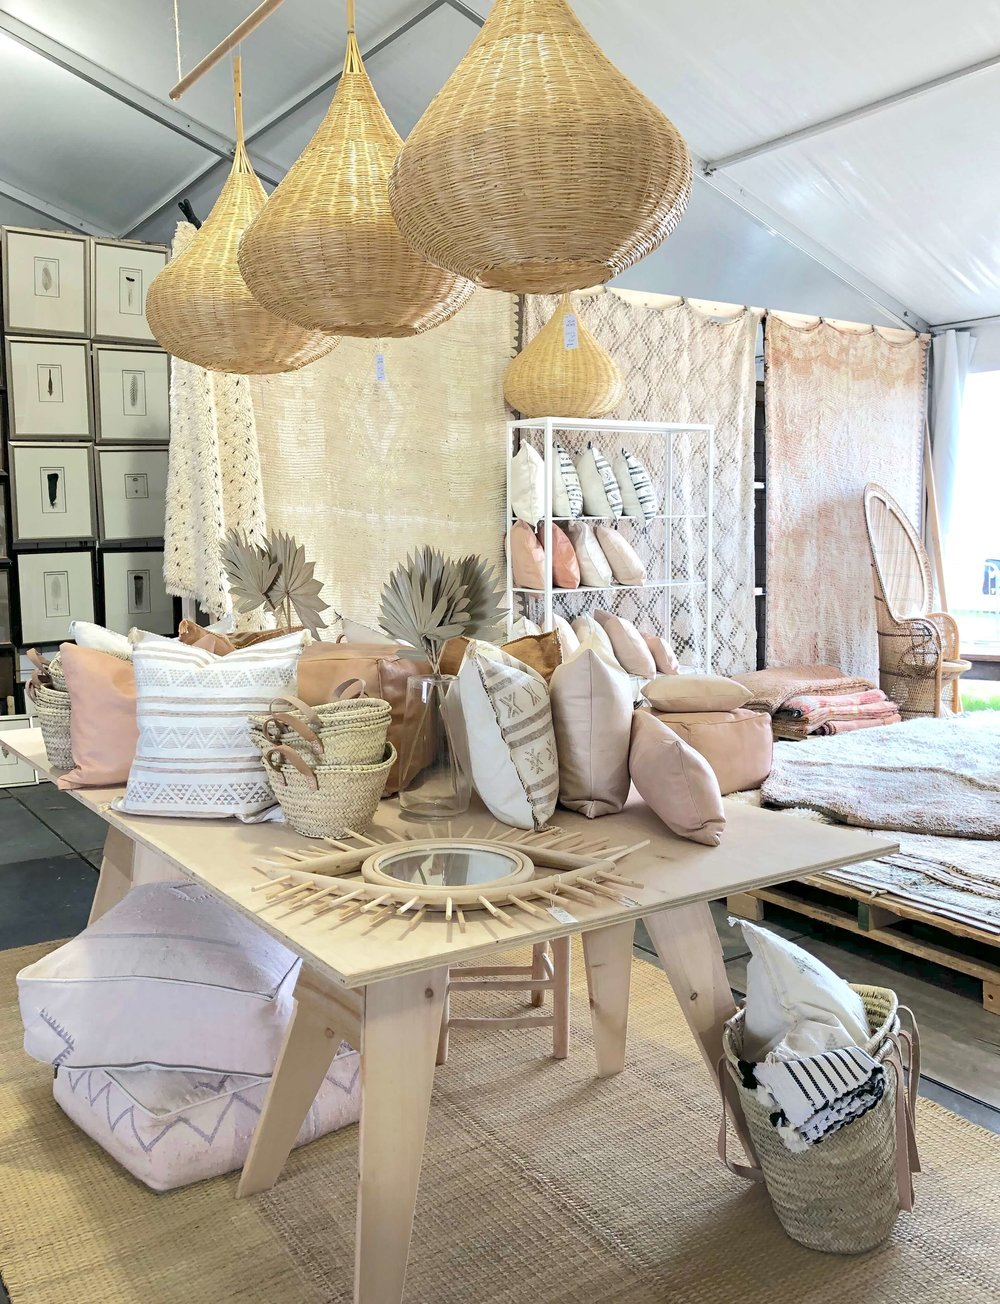 Moroccan rugs, textiles, pillows and poufs, Heja Home| The Arbors, Round Top Antique Fair